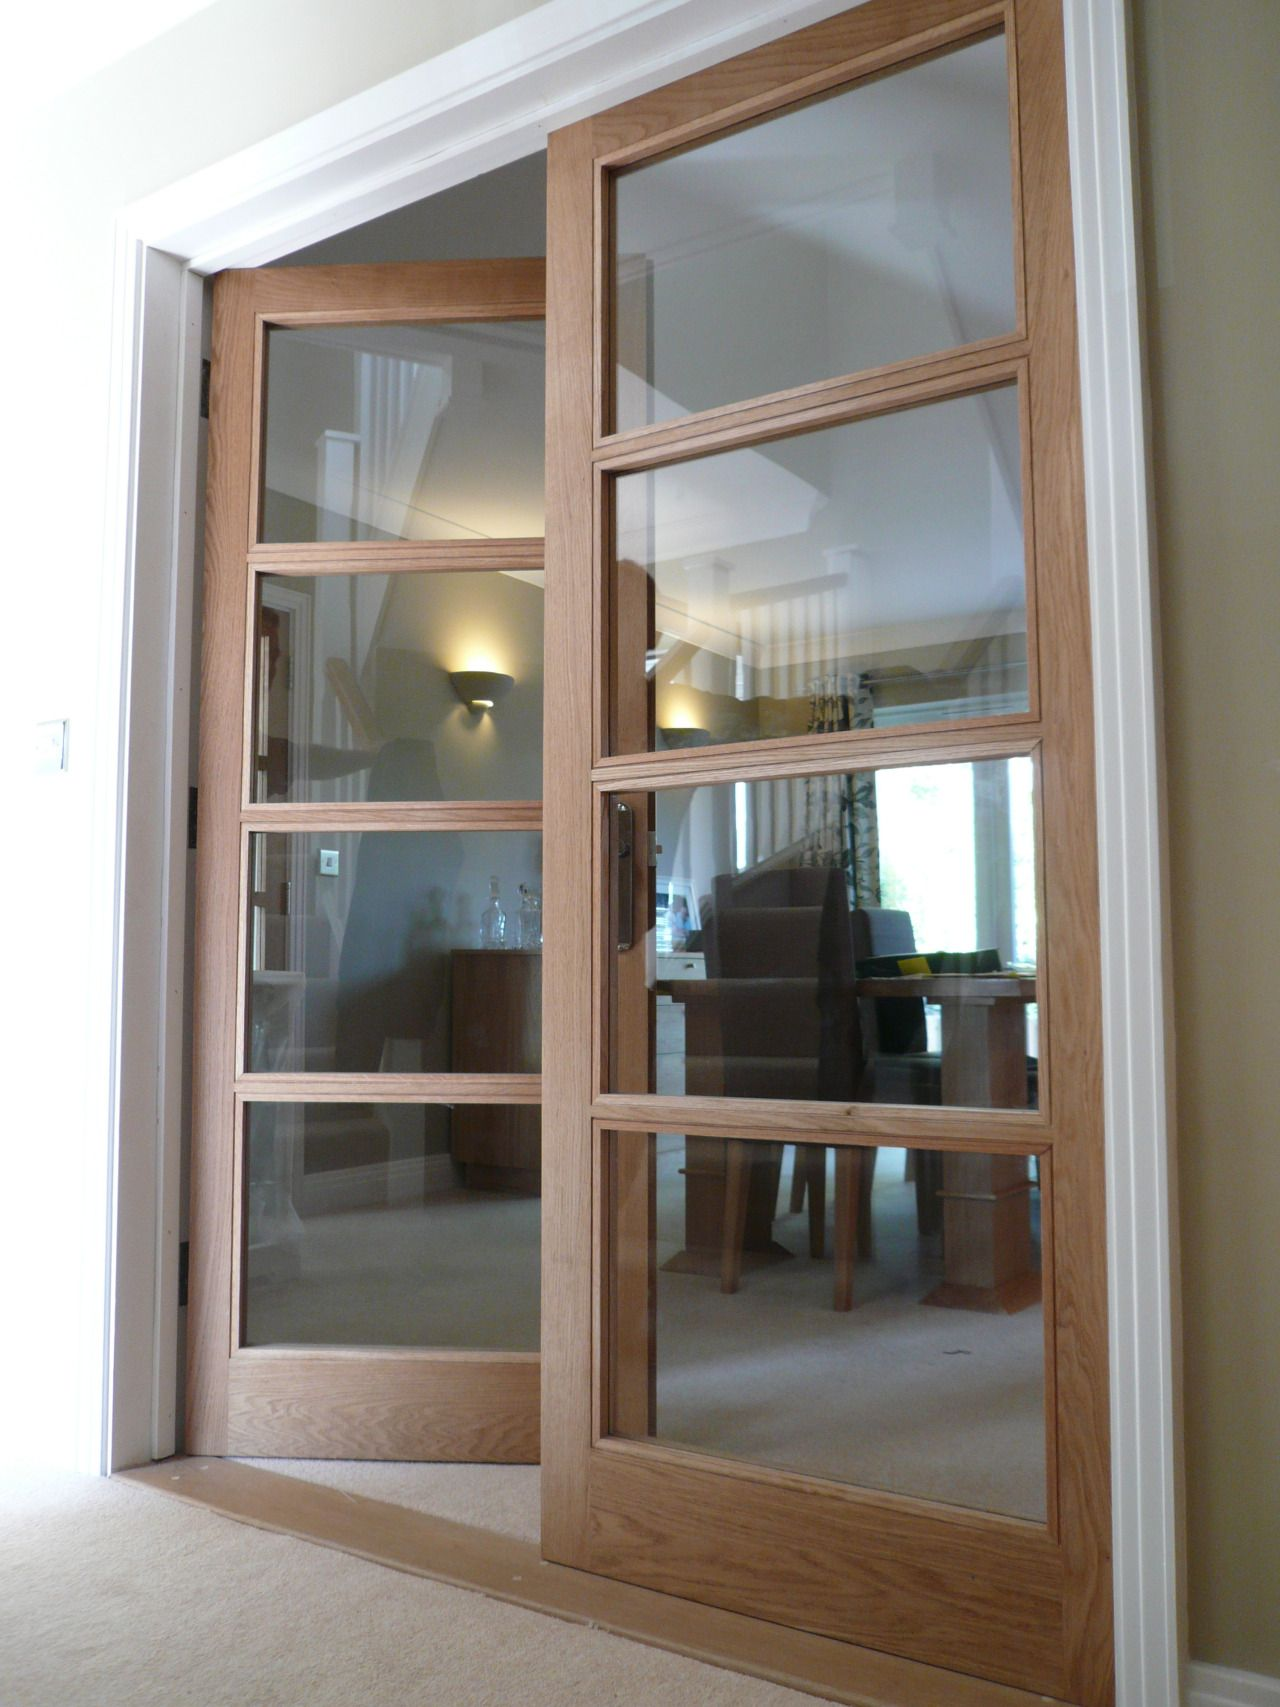 Internal Doors Made From Oak With Glass Paneling Throughout Providing A Simple Yet Elegant Transition Living Room To Dining